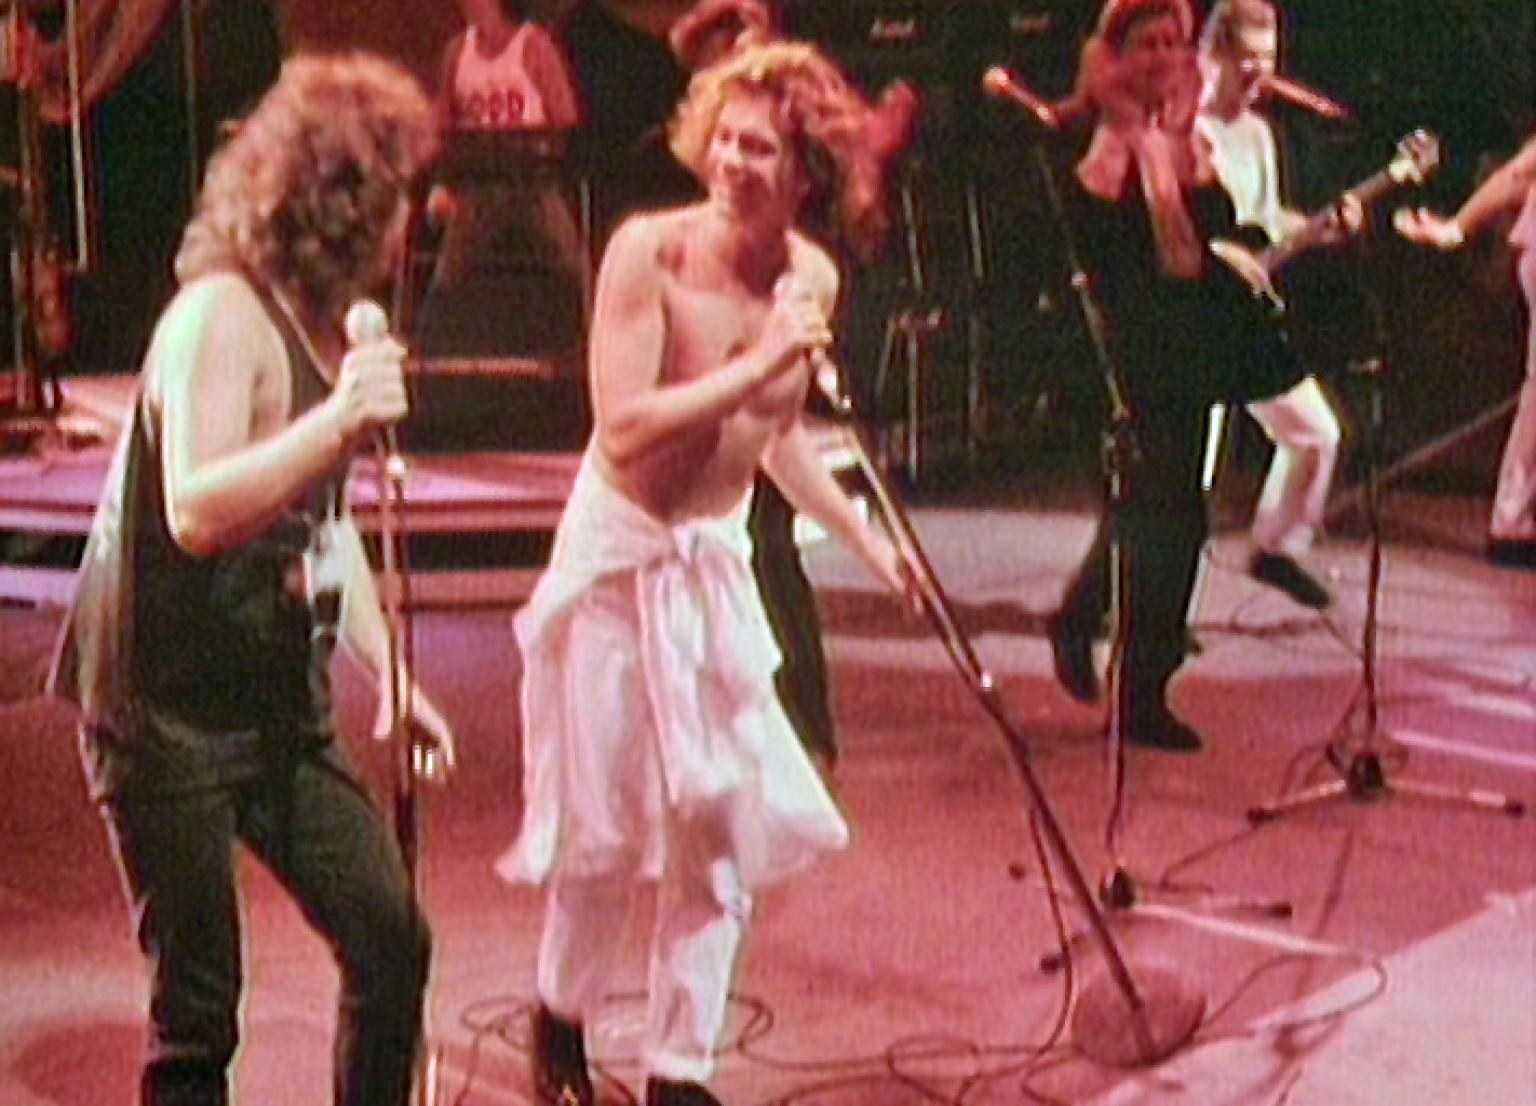 Jimmy Barnes and Michael Hutchence on stage at nighttime with lights at the back, Jimmy is dressed in black jeans and singlet and Michael is wearing white pants and no shirt. Both are singing into microphones.